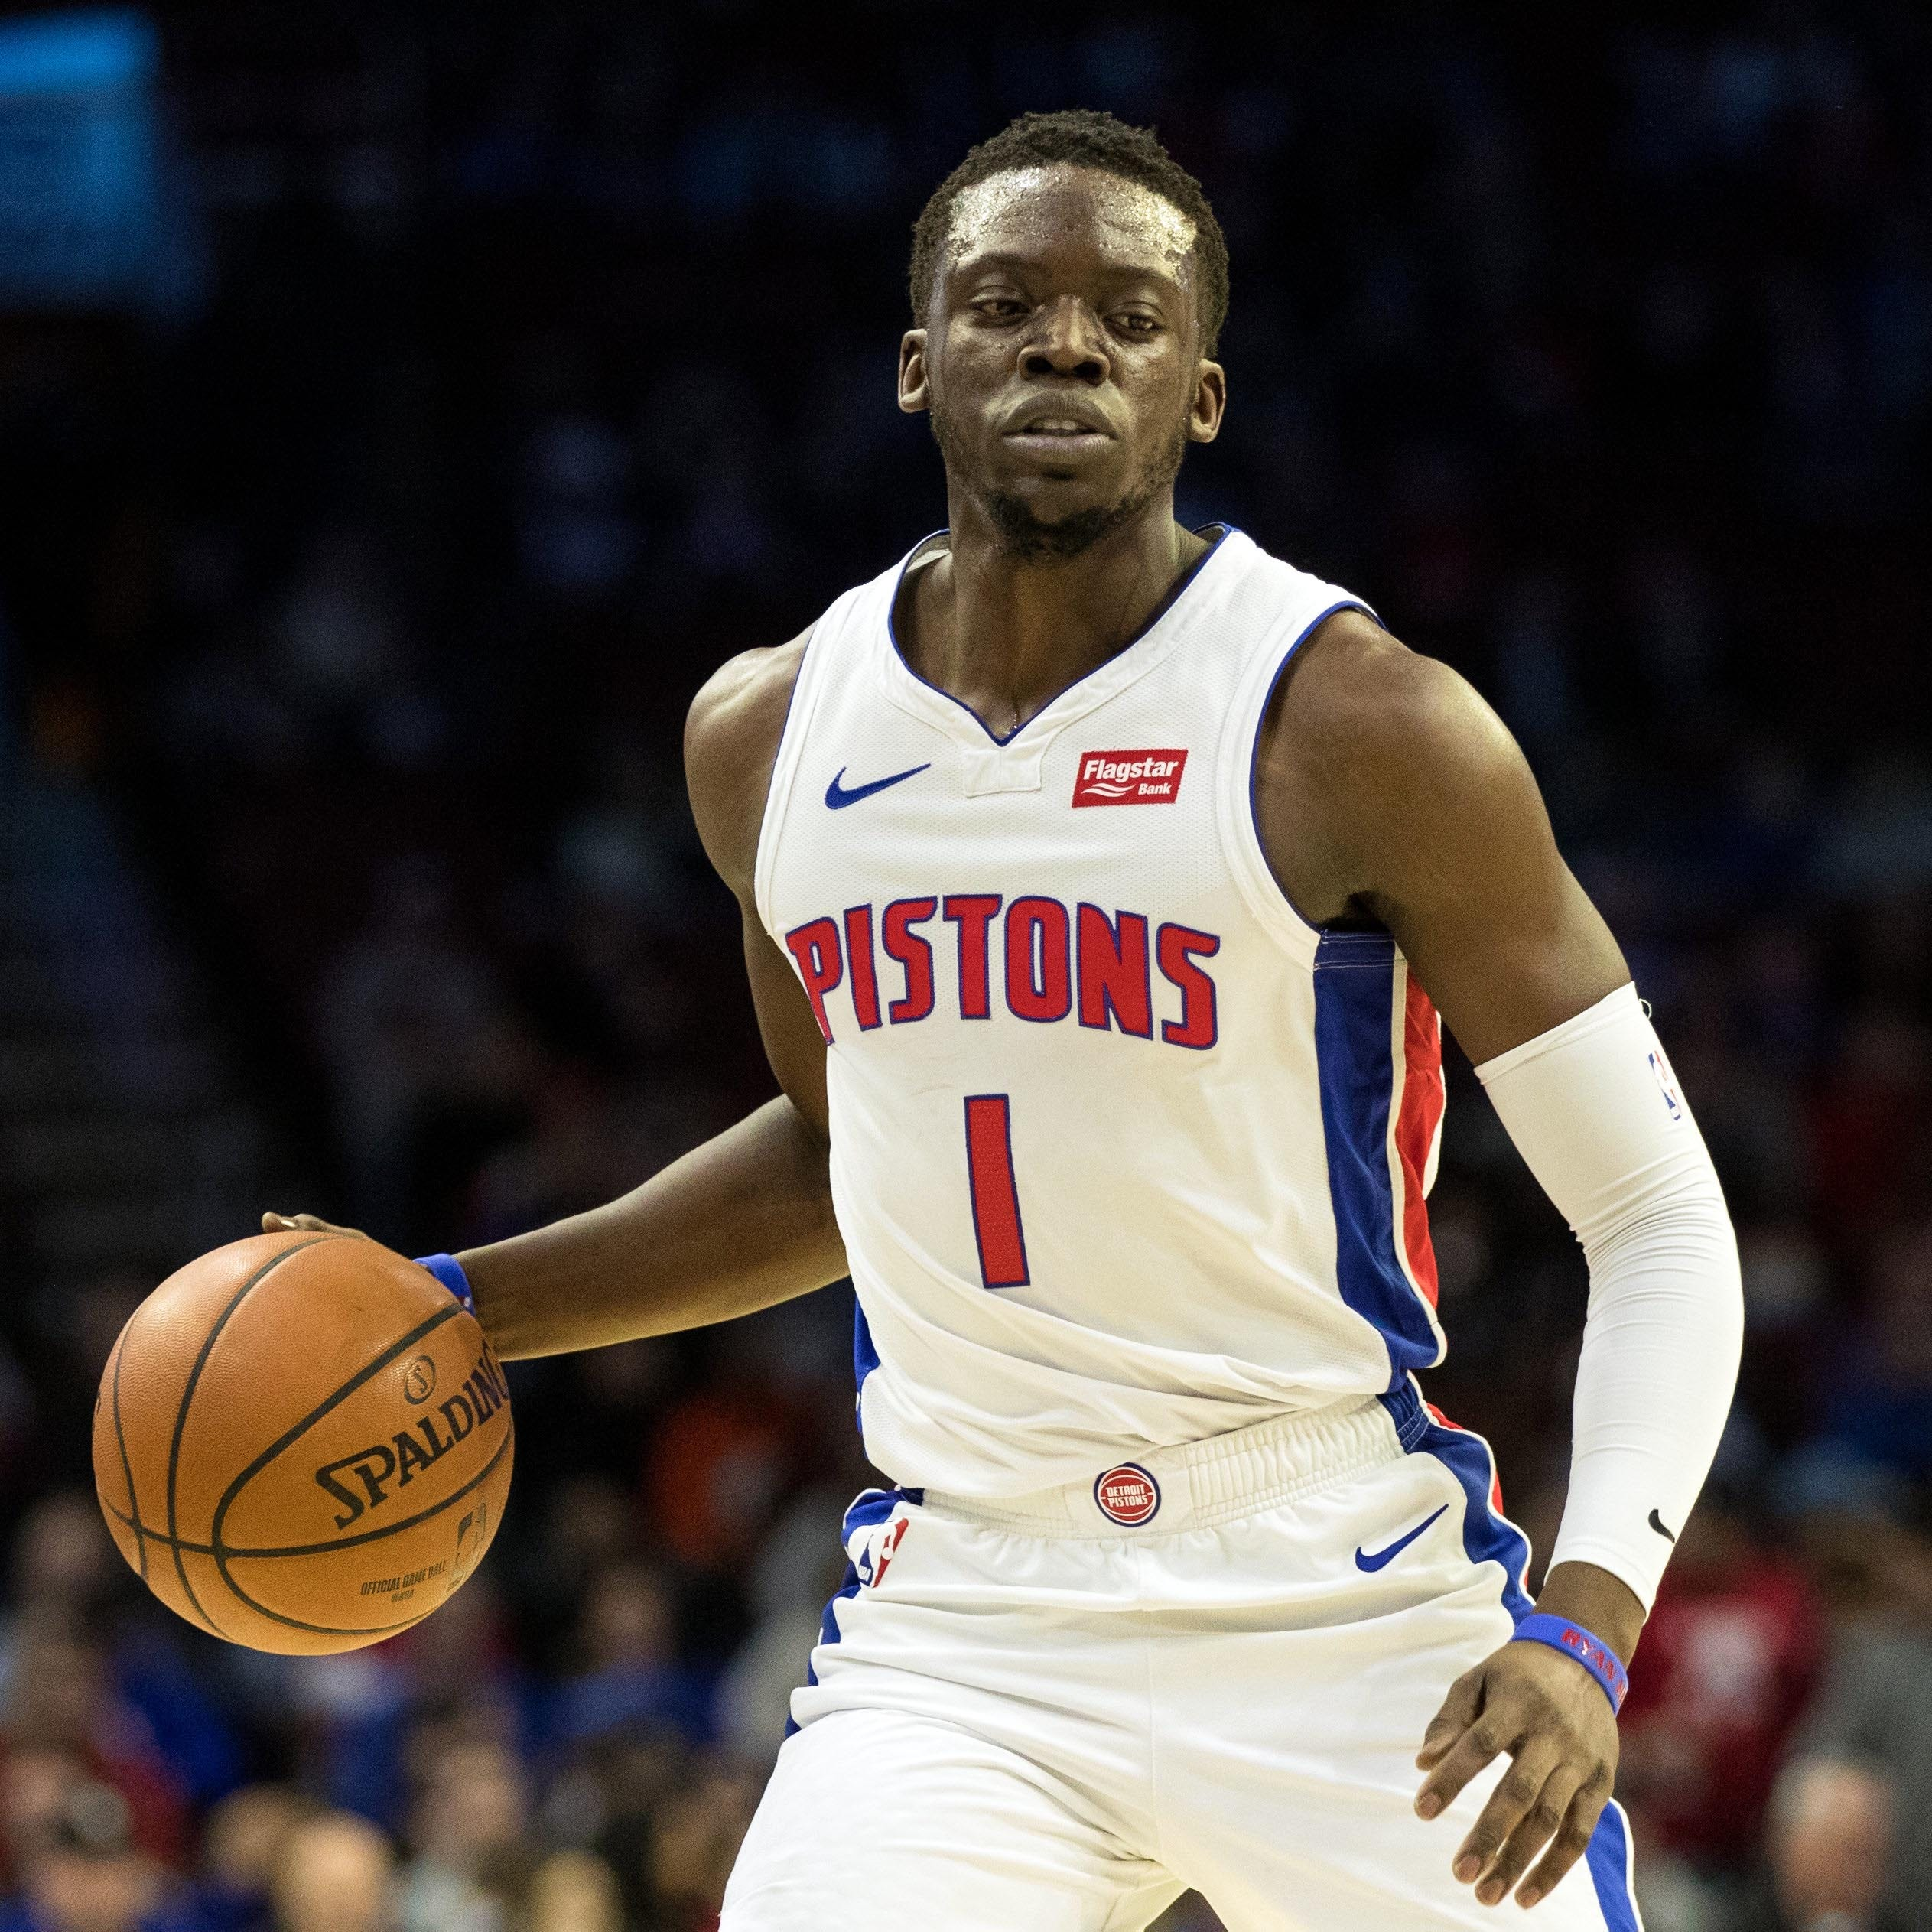 Game thread: Pistons defeated by 76ers, 116-102